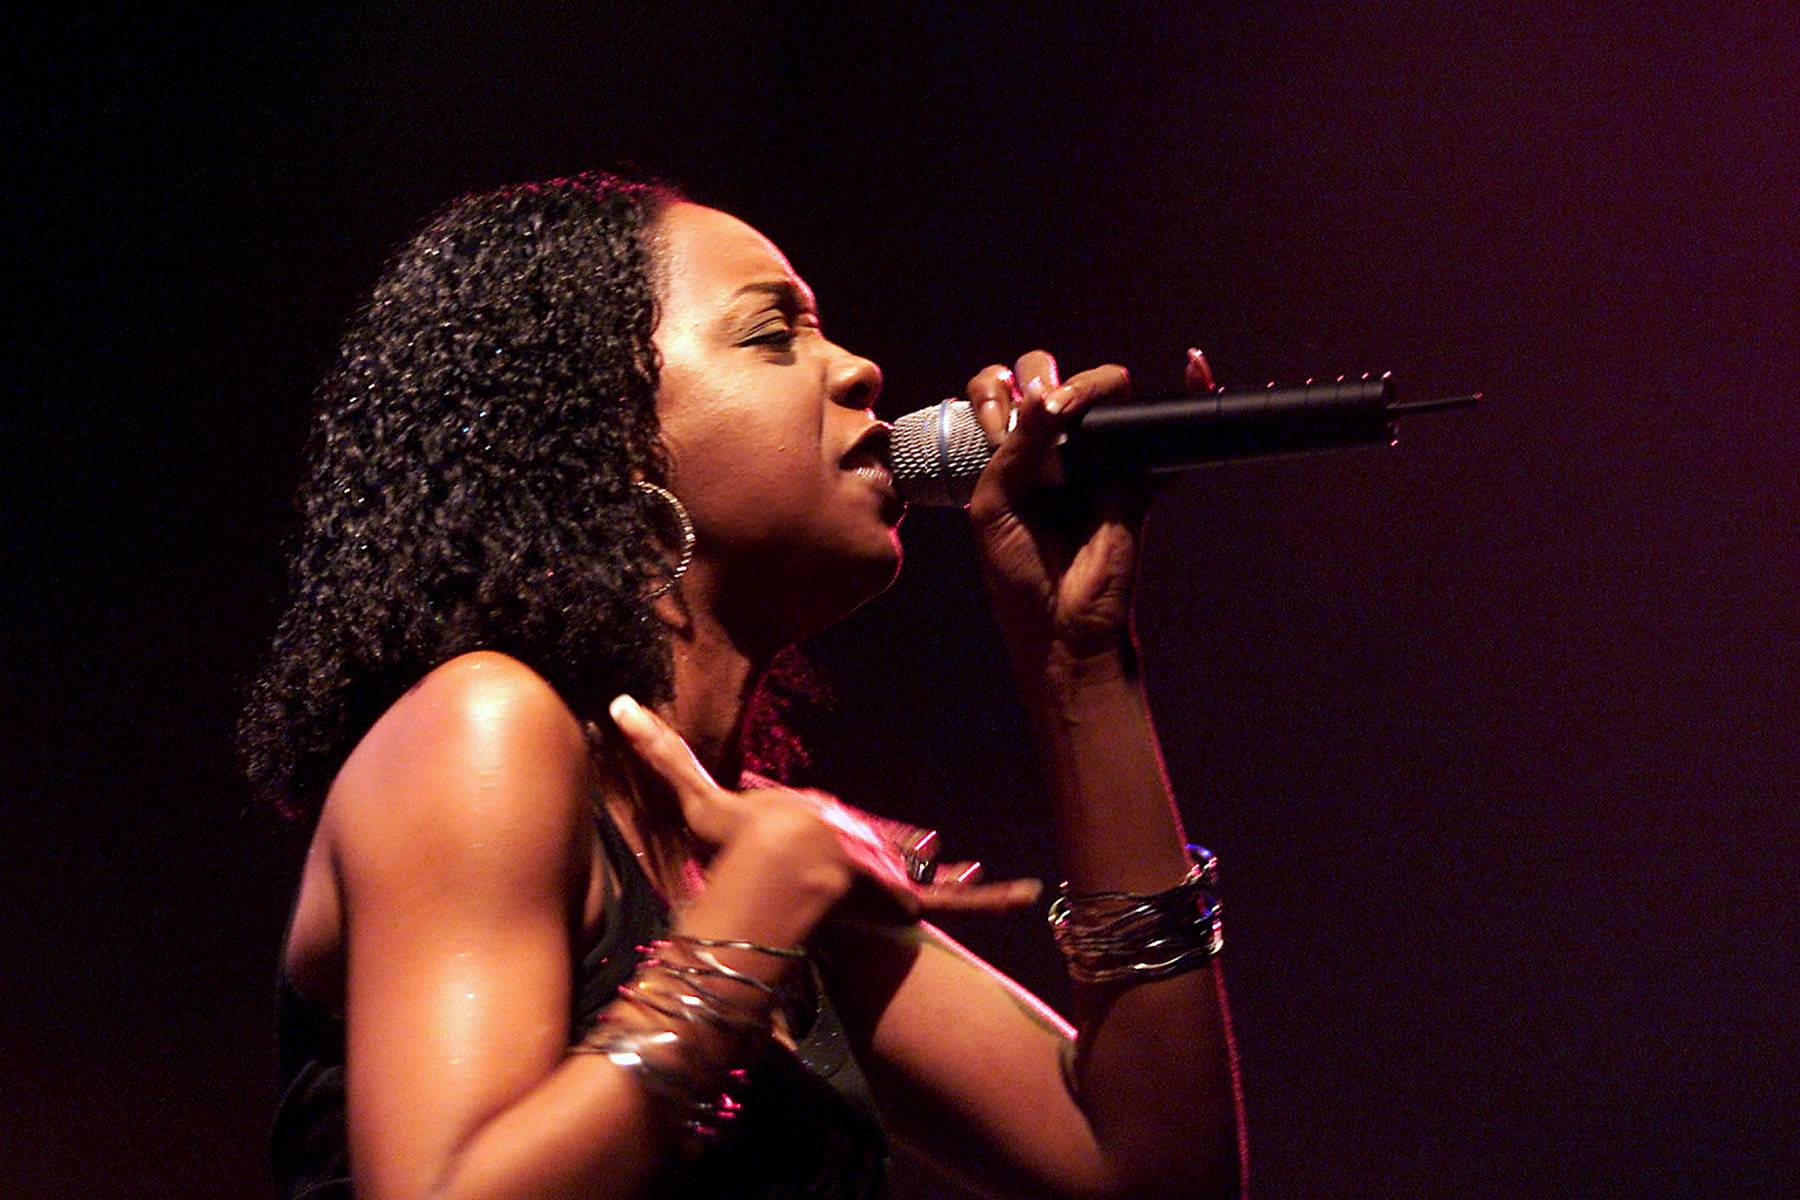 Rah Digga ? Da Outsidaz - Before linking up with Busta Rhymes and joining his Flipmode Squad, Rah Digga was the only female in Da Outsidaz clique.(Photo: Scott Gries/ImageDirect)